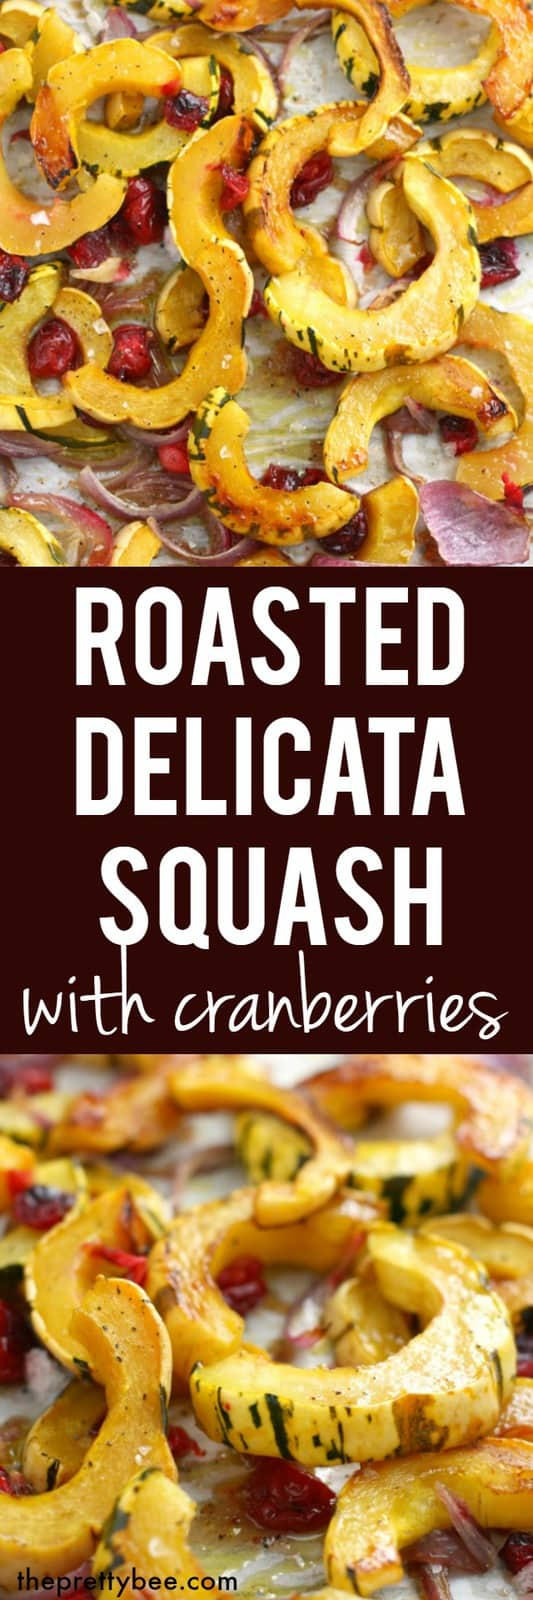 A simple and delicious roasted delicata squash recipe - this is a tasty gluten free and vegan side dish that's great for Thanksgiving! #vegan #glutenfree #thanksgiving